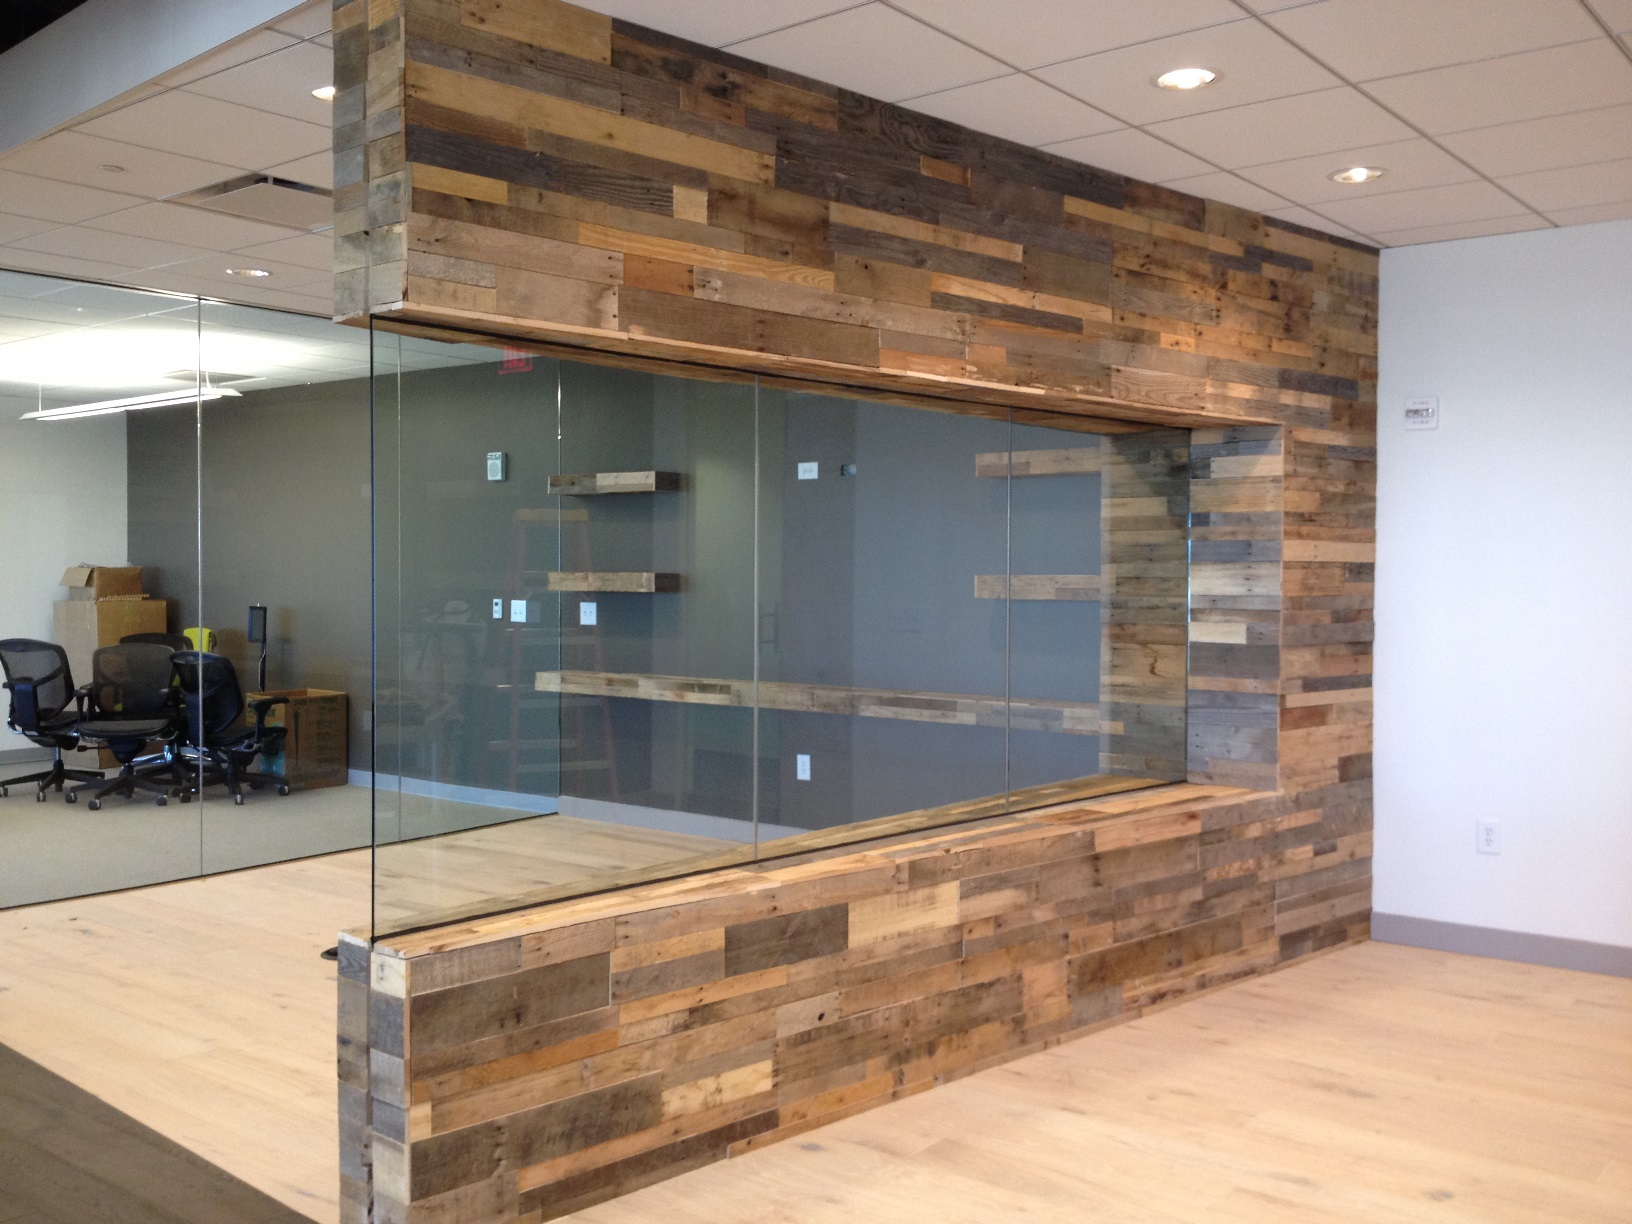 Reclaimed pallet wood paneling